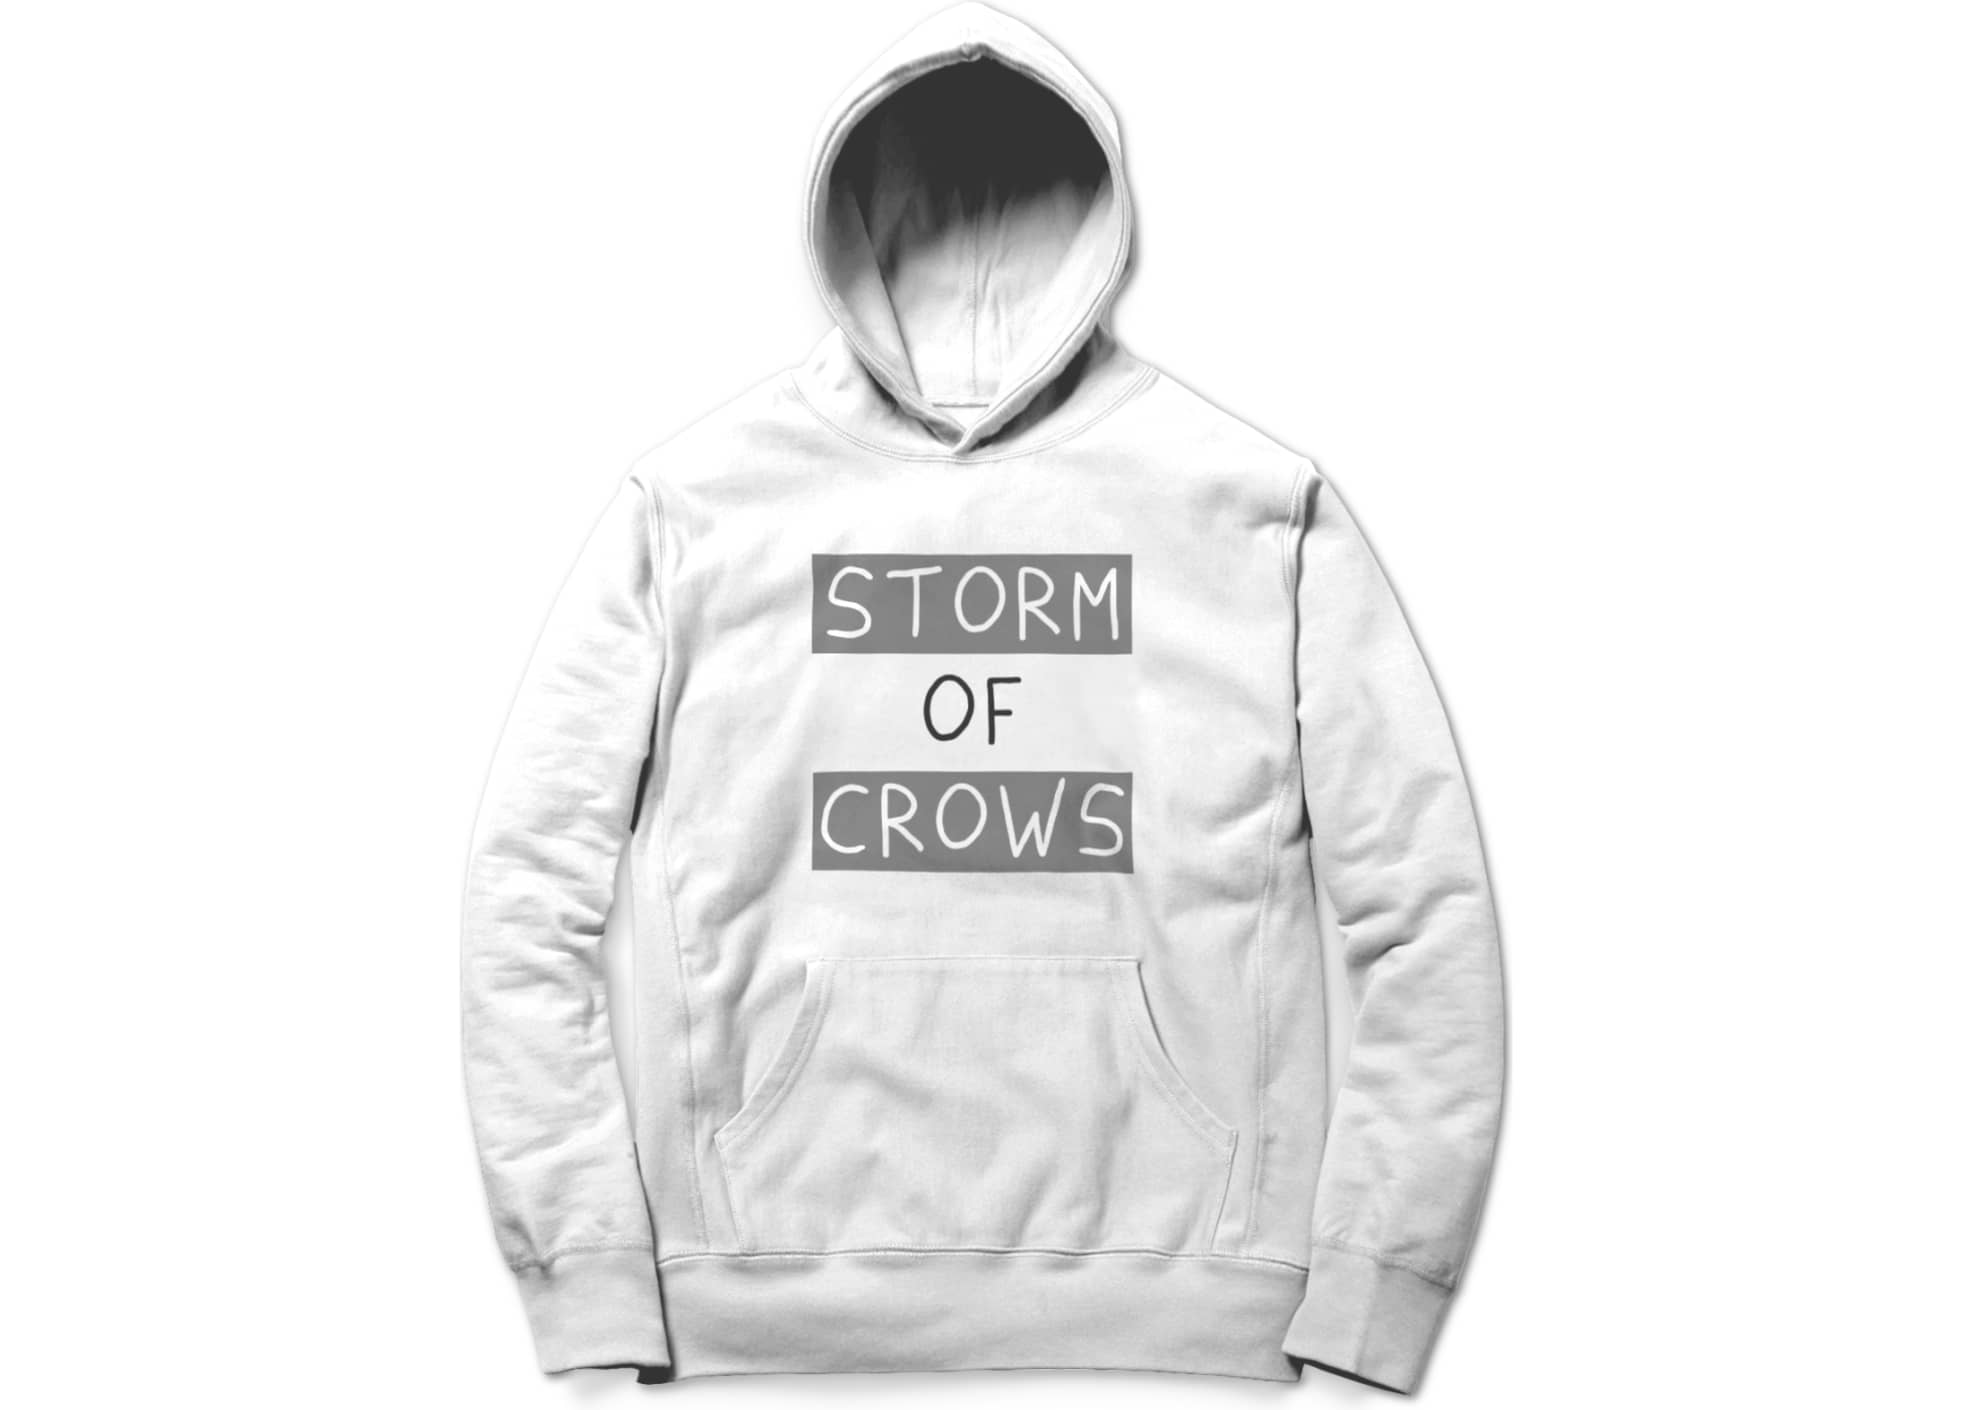 Storm of crows storm of crows   logo   white 1615733648